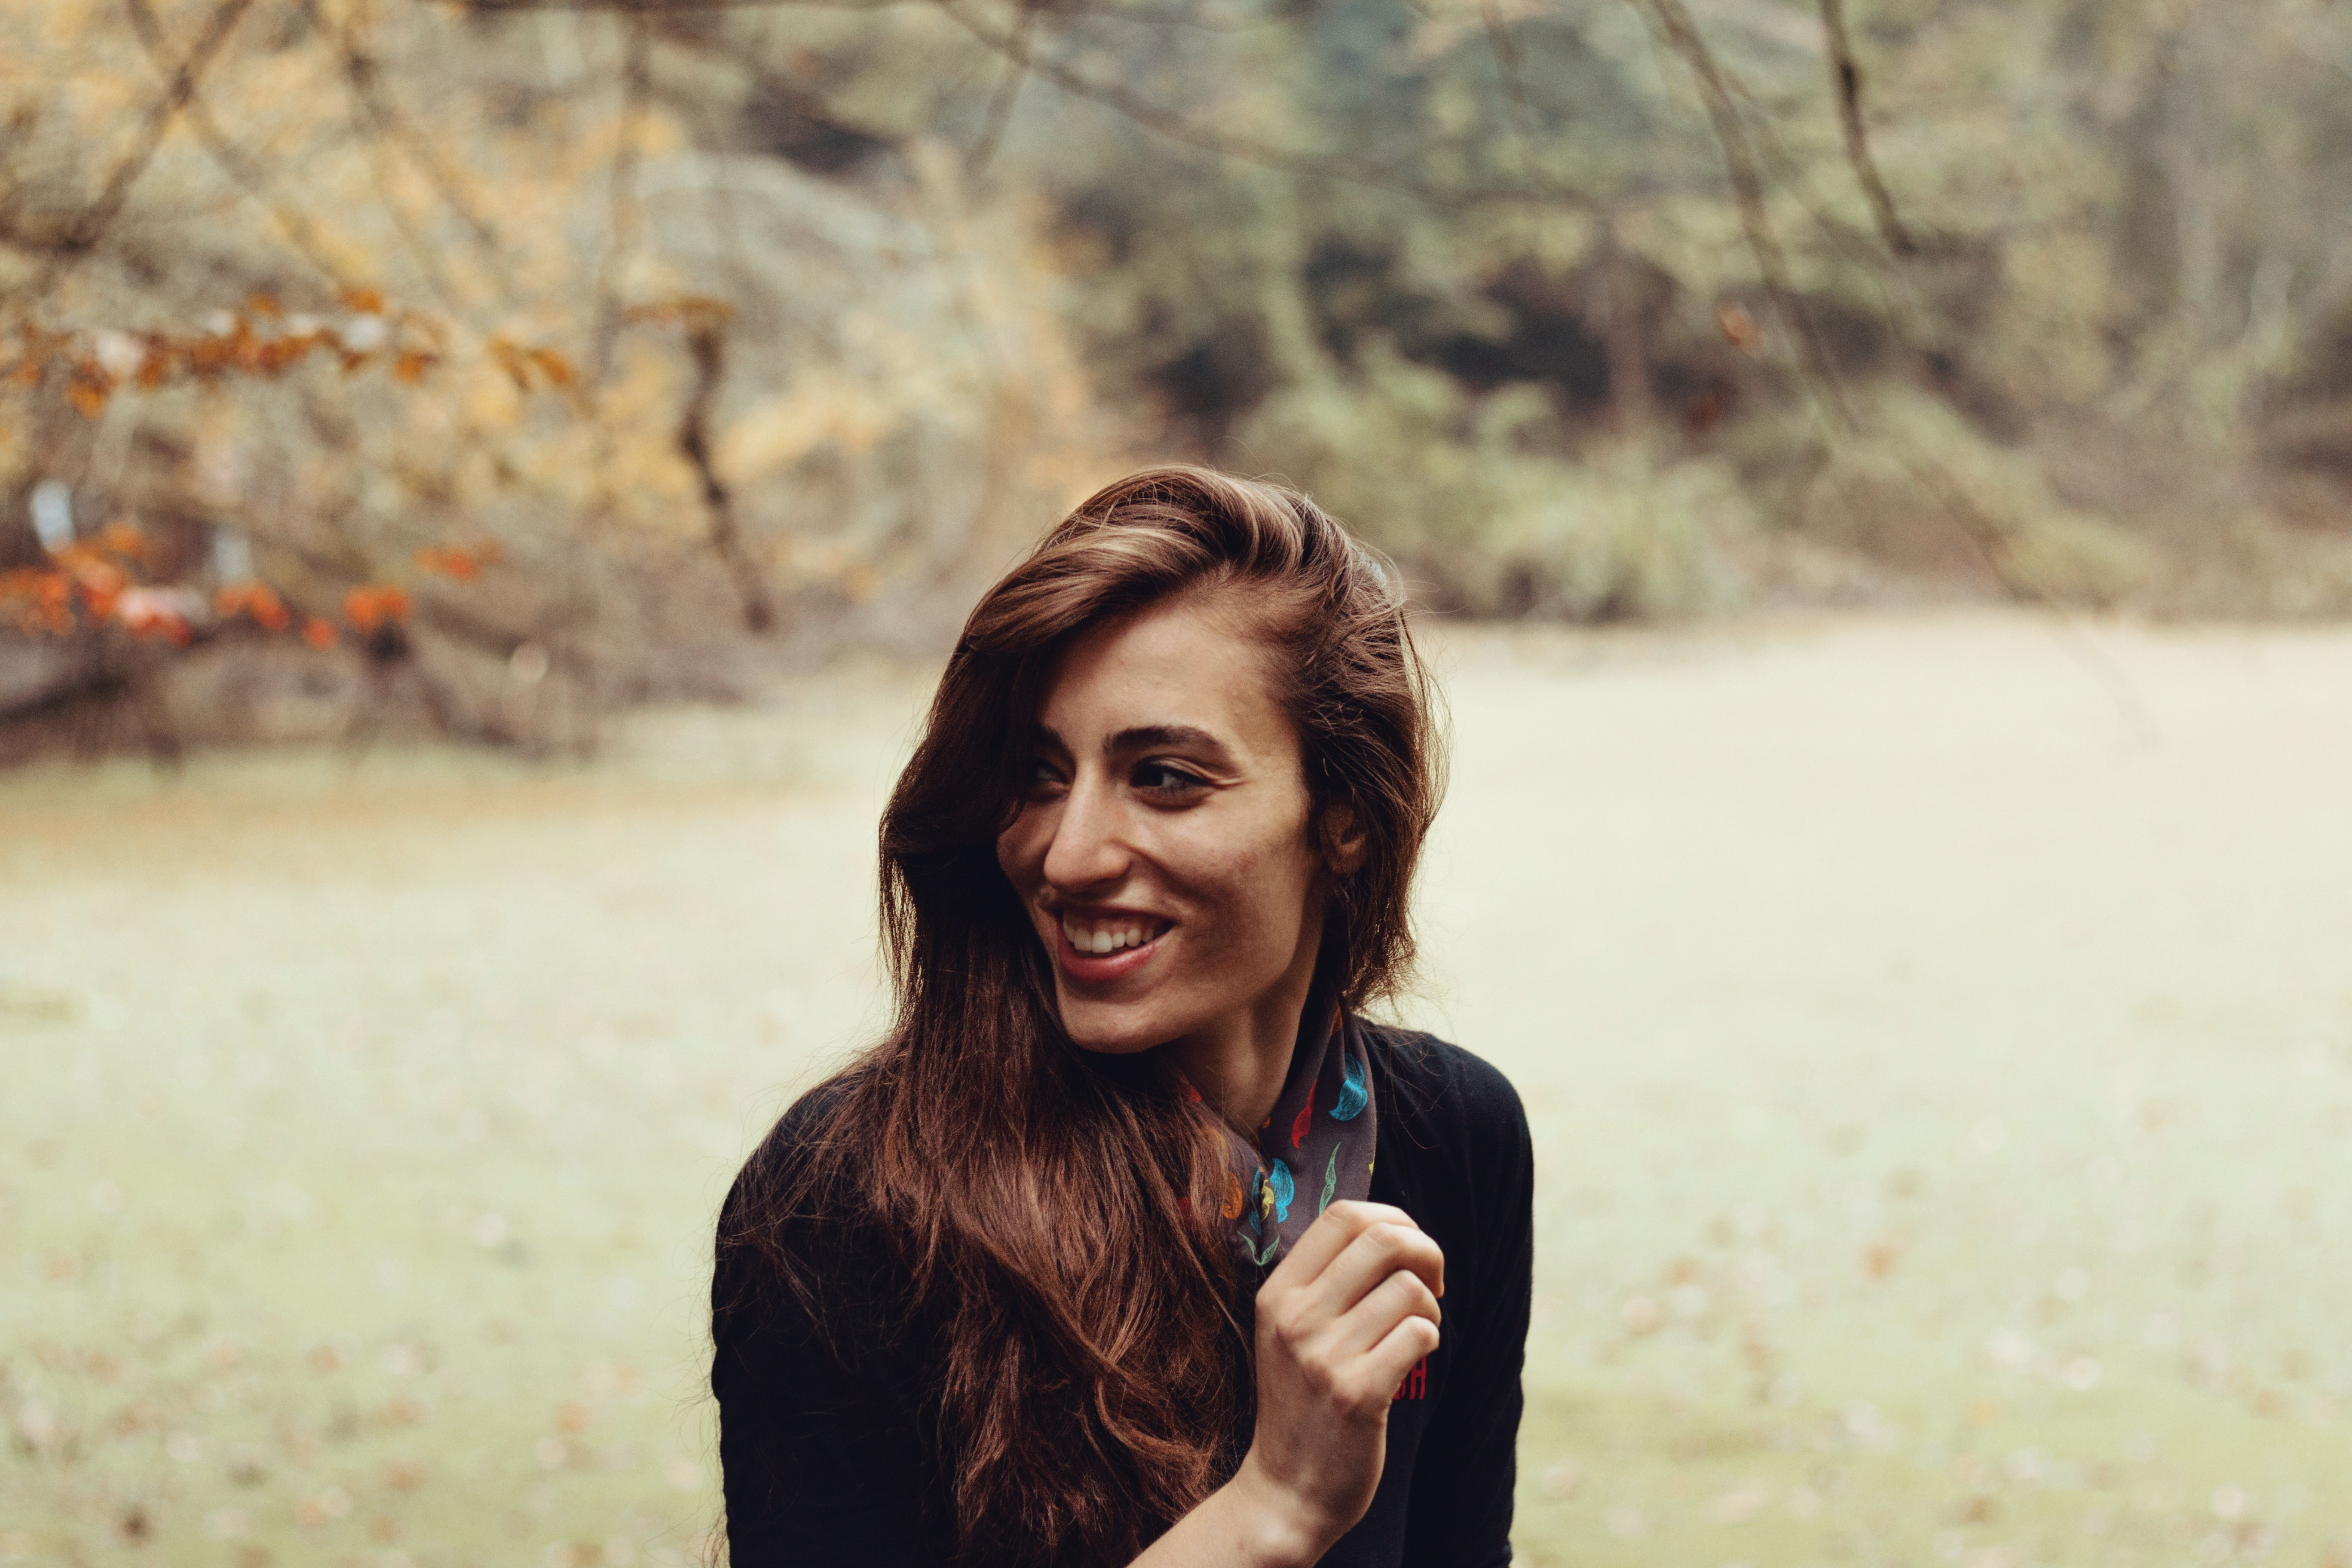 woman smiling outdoor during daytime